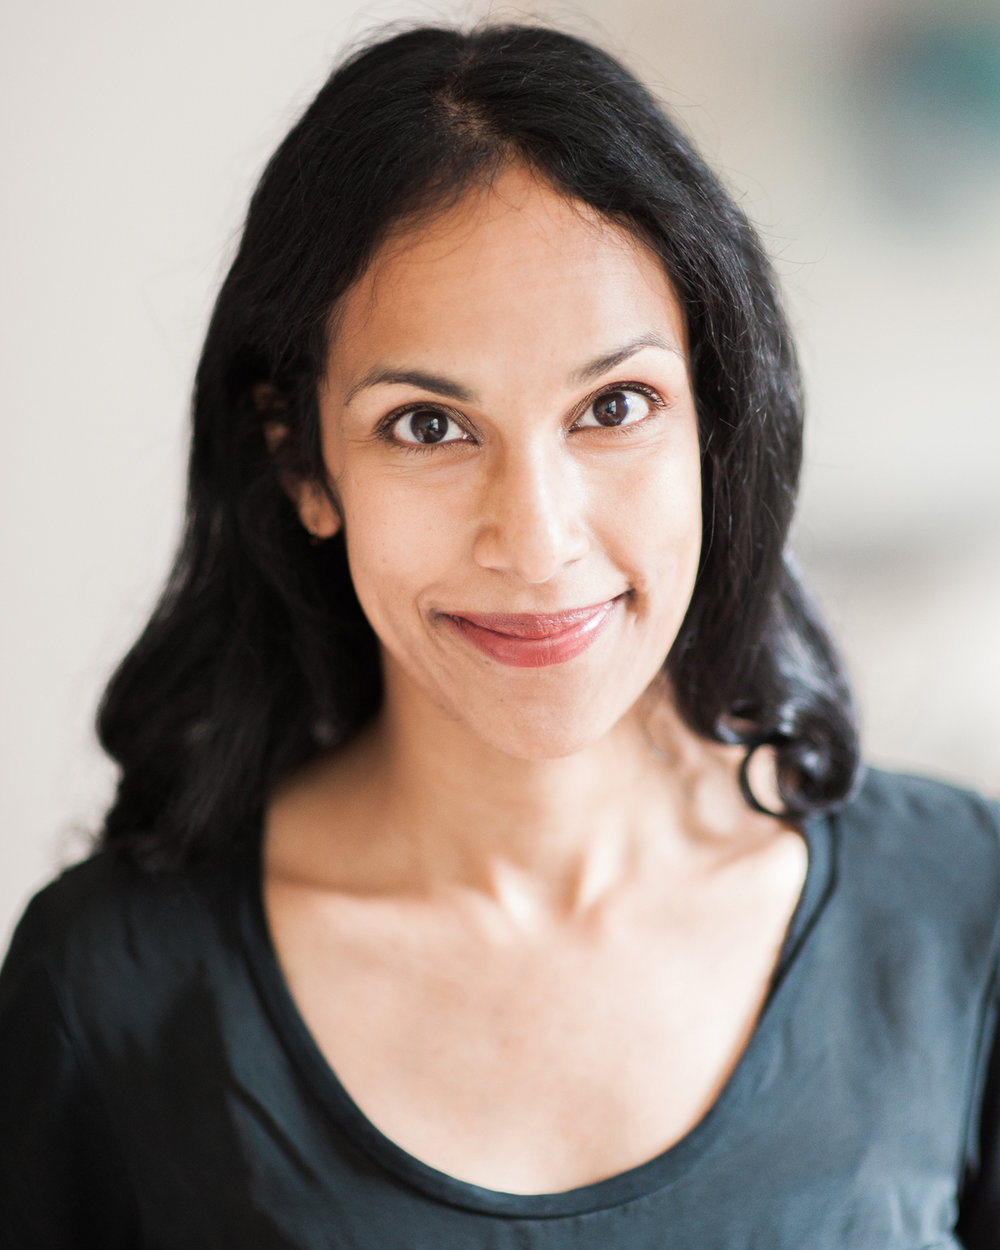 Melanie Samarasinghe Senior Manager at Twitter headshot NYC by Lindsey Victoria Photography